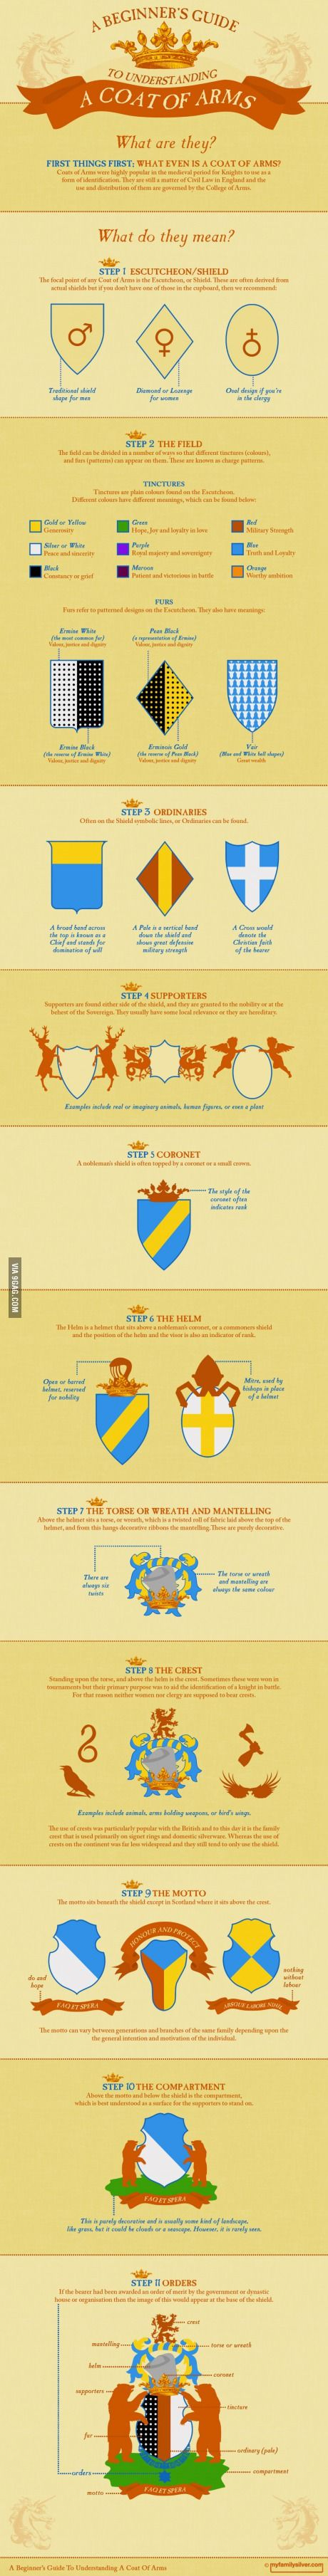 A beginners guide to understanding a coat of arms arms genealogy a beginners guide to understanding a coat of arms biocorpaavc Images